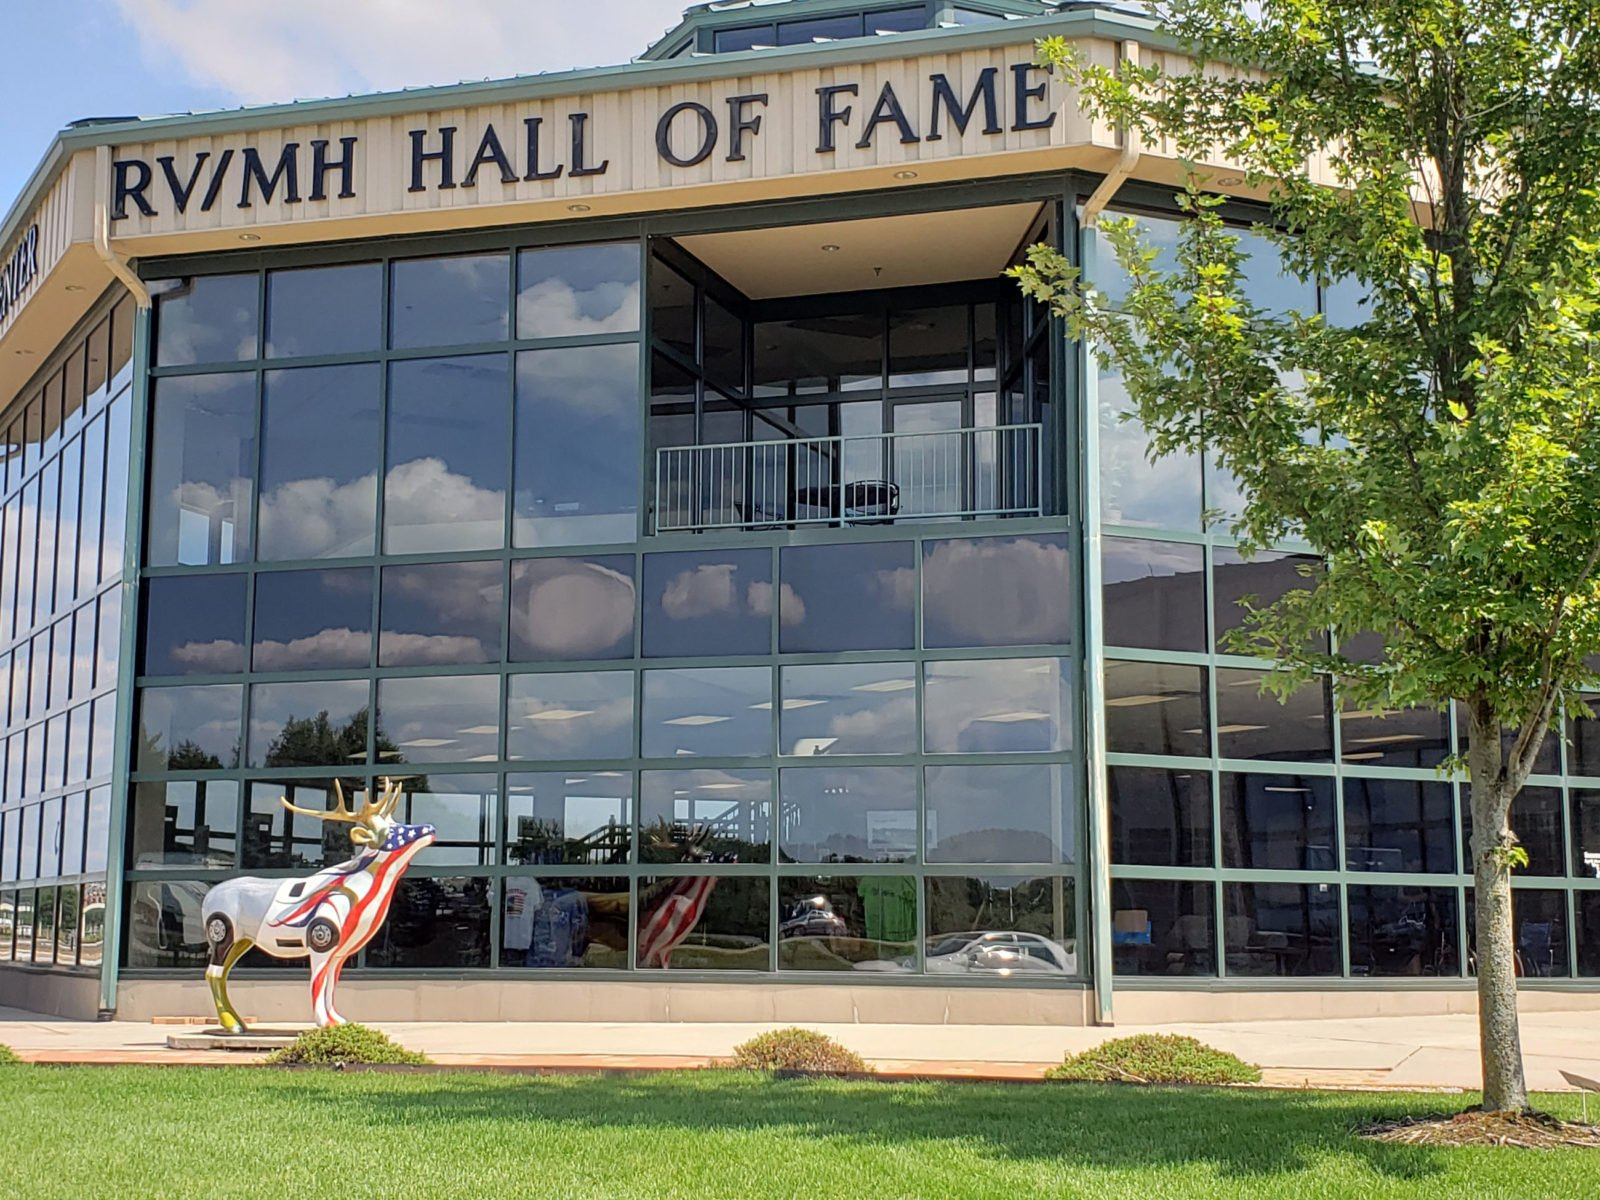 RV museum and hall of fame in Elkhart, Indiana